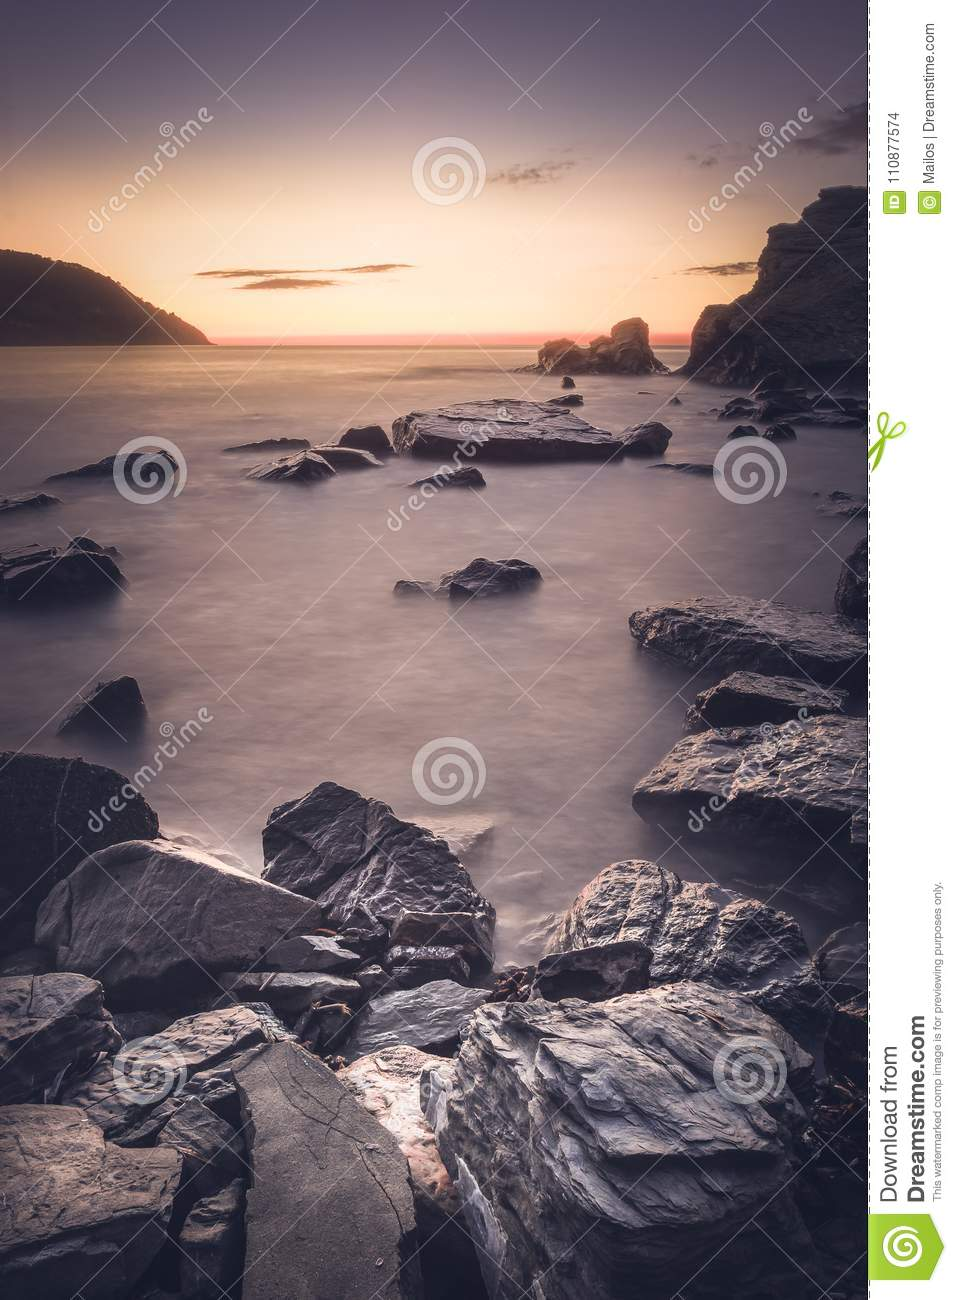 View of a sunset and in the foreground of the rocks